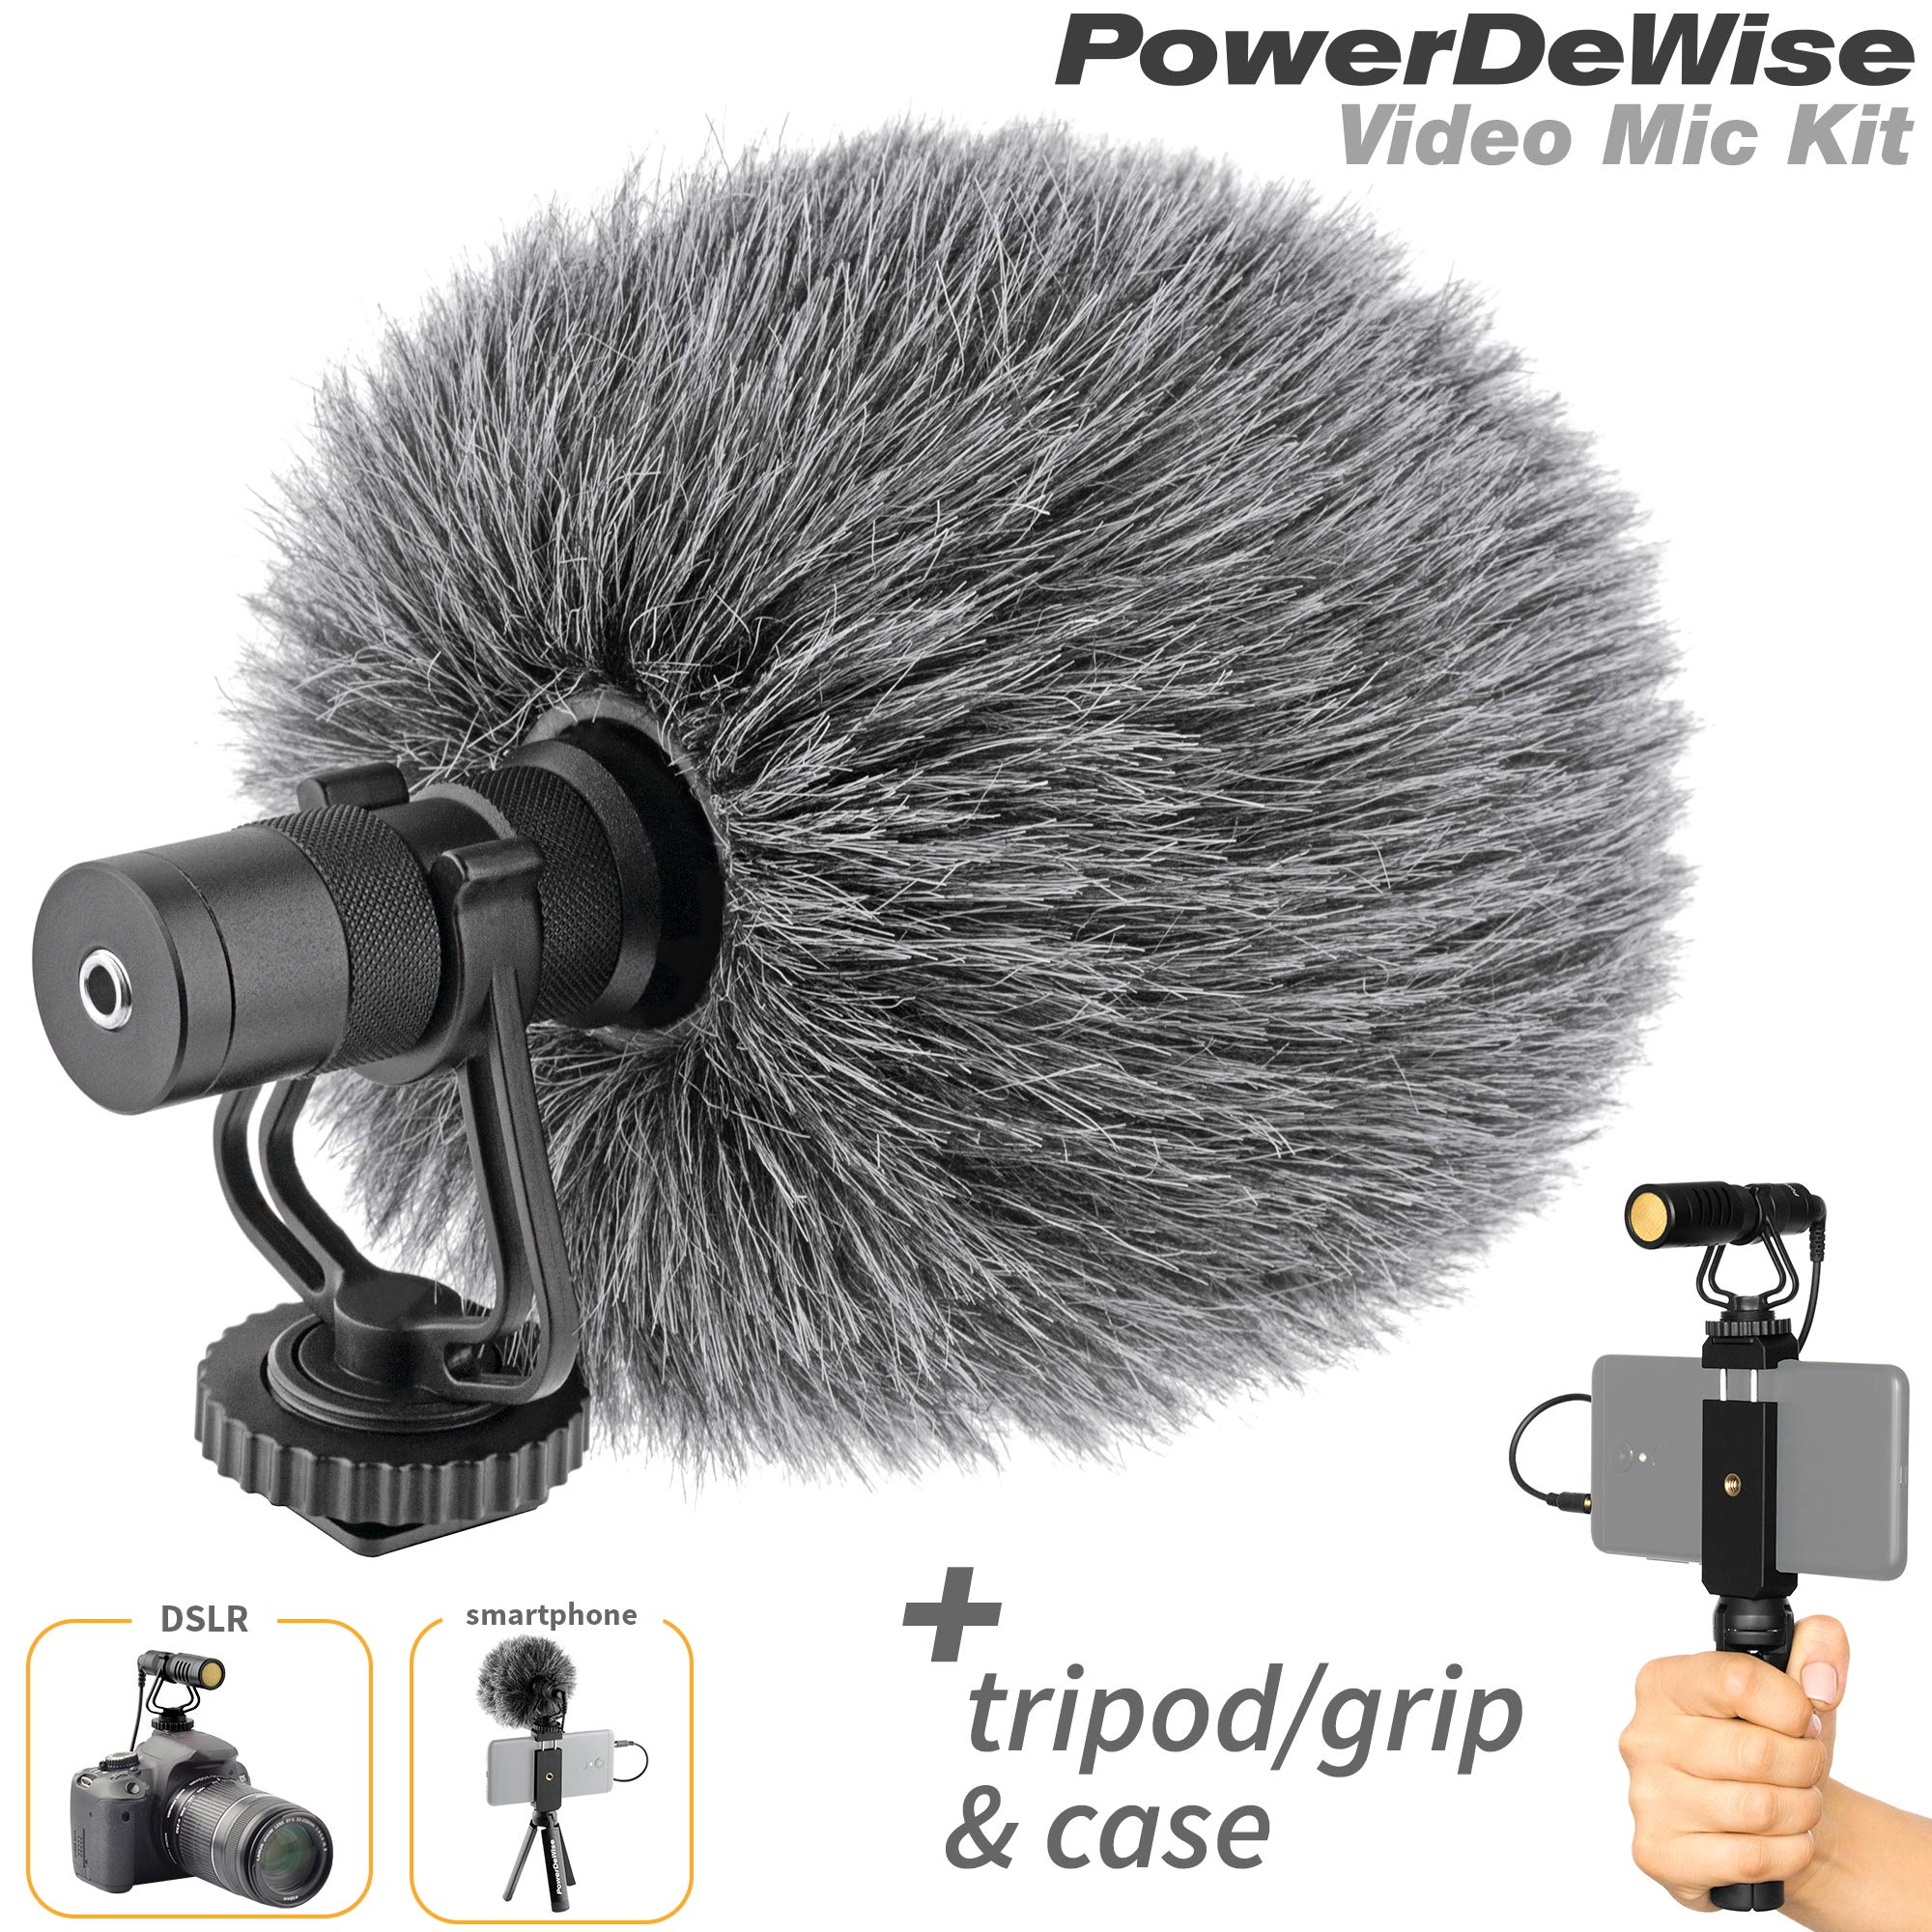 Video Microphone - Unidirectional On-Camera Microphone for DSLR Cameras and Phones - Directional Cardioid iPhone Video Microphone by PowerDeWise